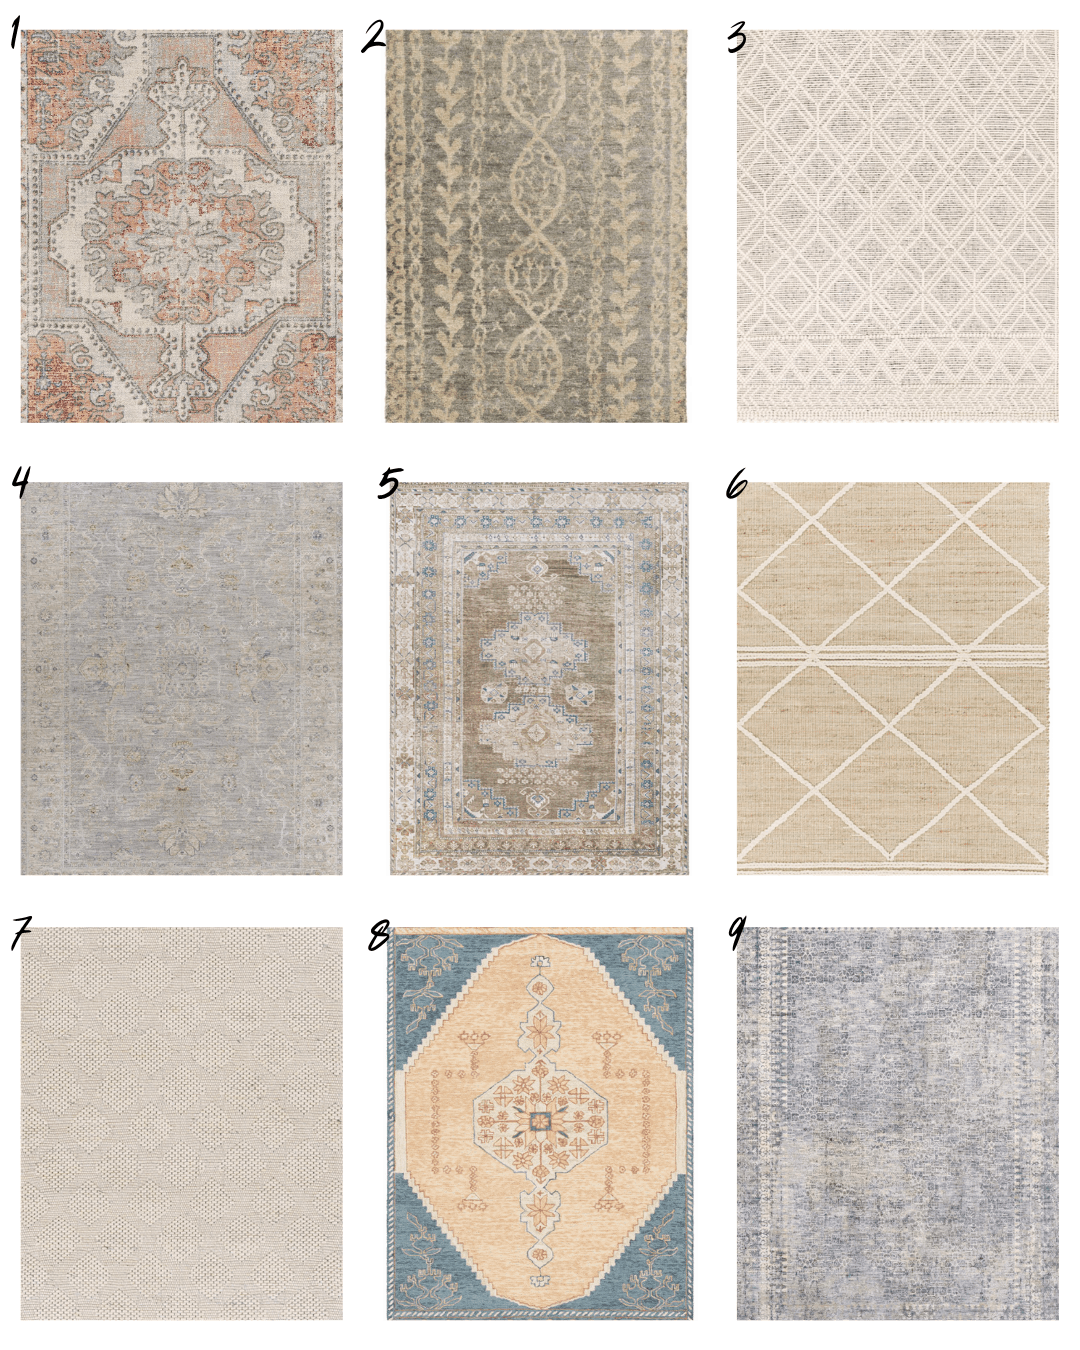 Boutique Rugs roundup with designer rugs for less.